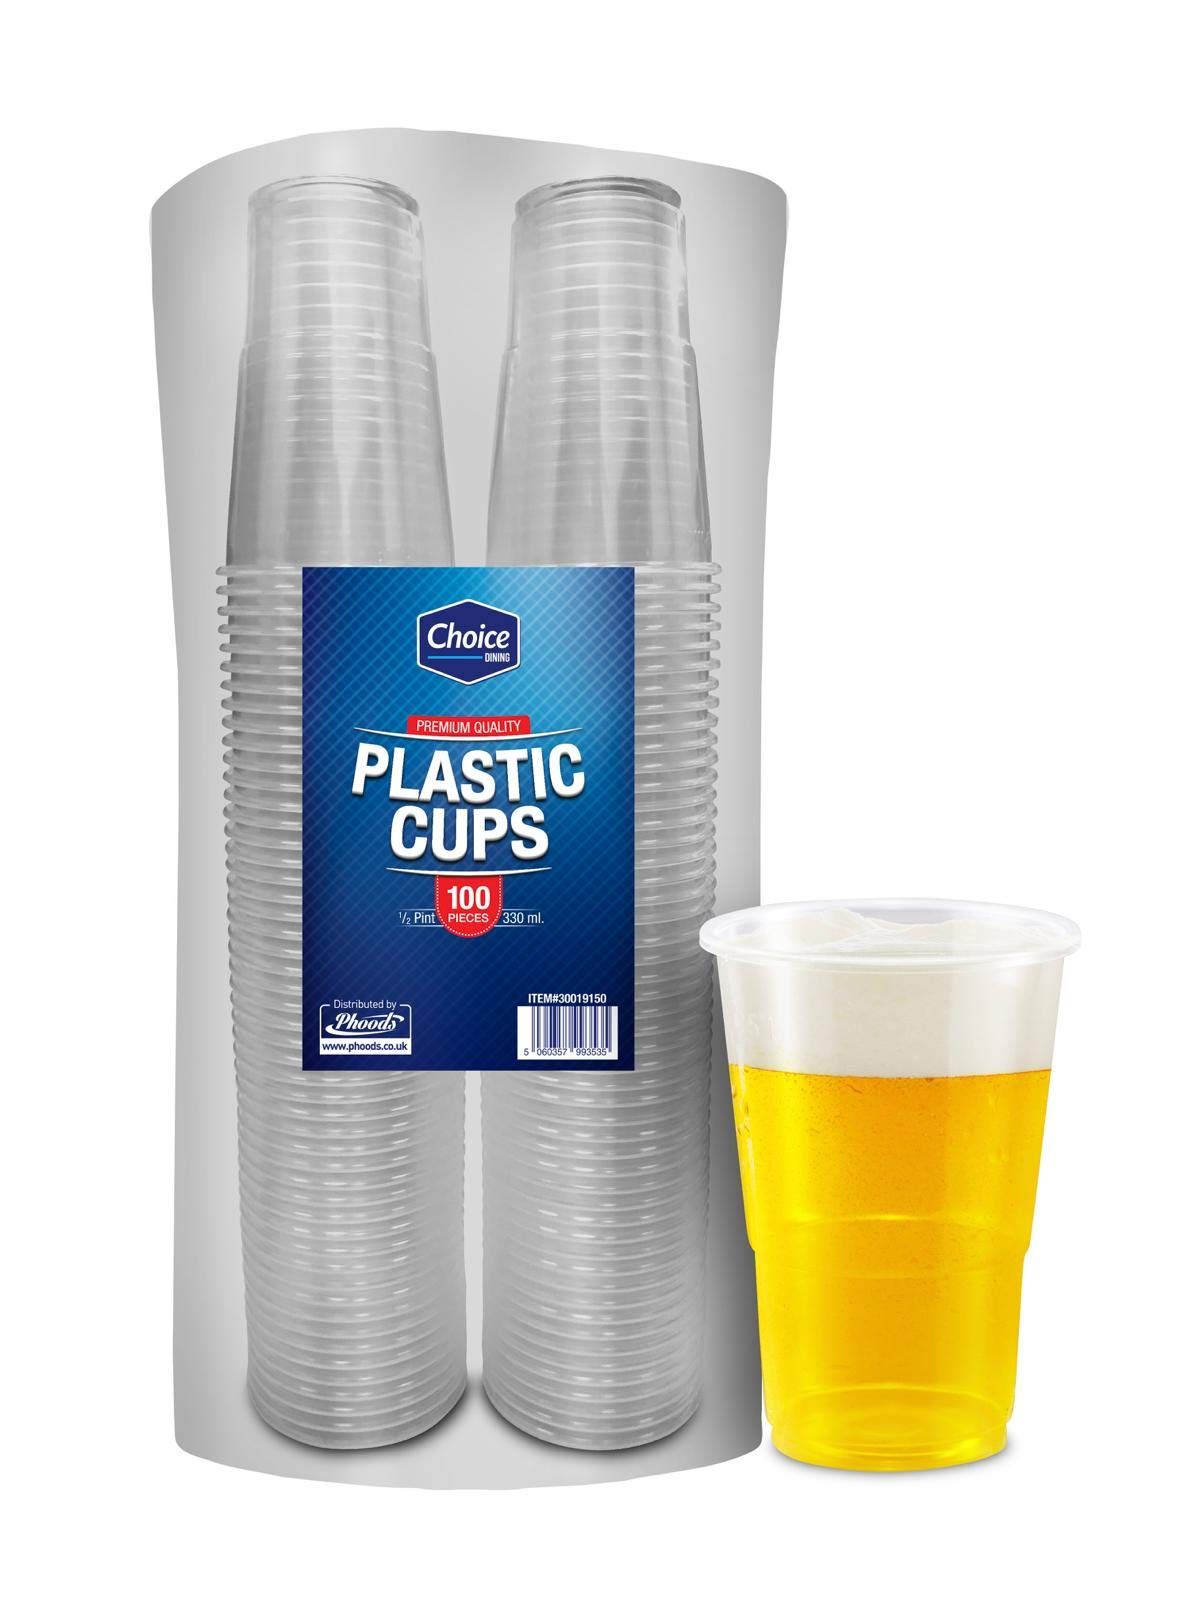 CPD CPD00808 VMAXCWCT 7 oz Maxima Water Cup Clear Pack of 100